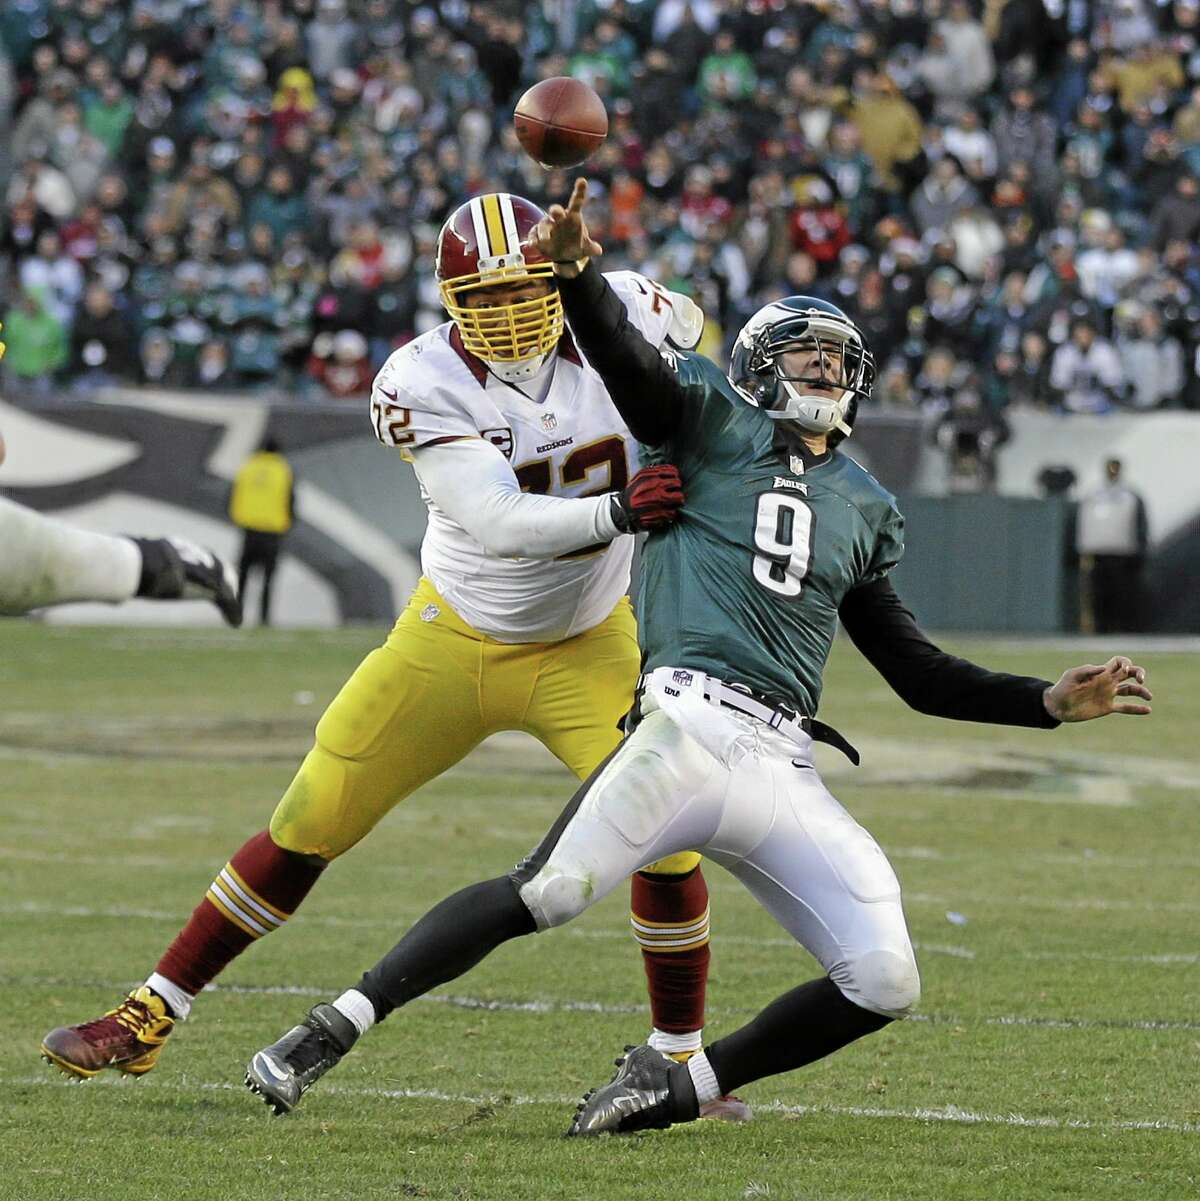 Philadelphia Eagles' Nick Foles passes the ball as Washington Redskins' Stephen Bowen brings him down during the final seconds of an NFL football game on Dec. 23, 2012, in Philadelphia. Foles was called for intentional grounding on the game-ending play. Washington won 27-20.